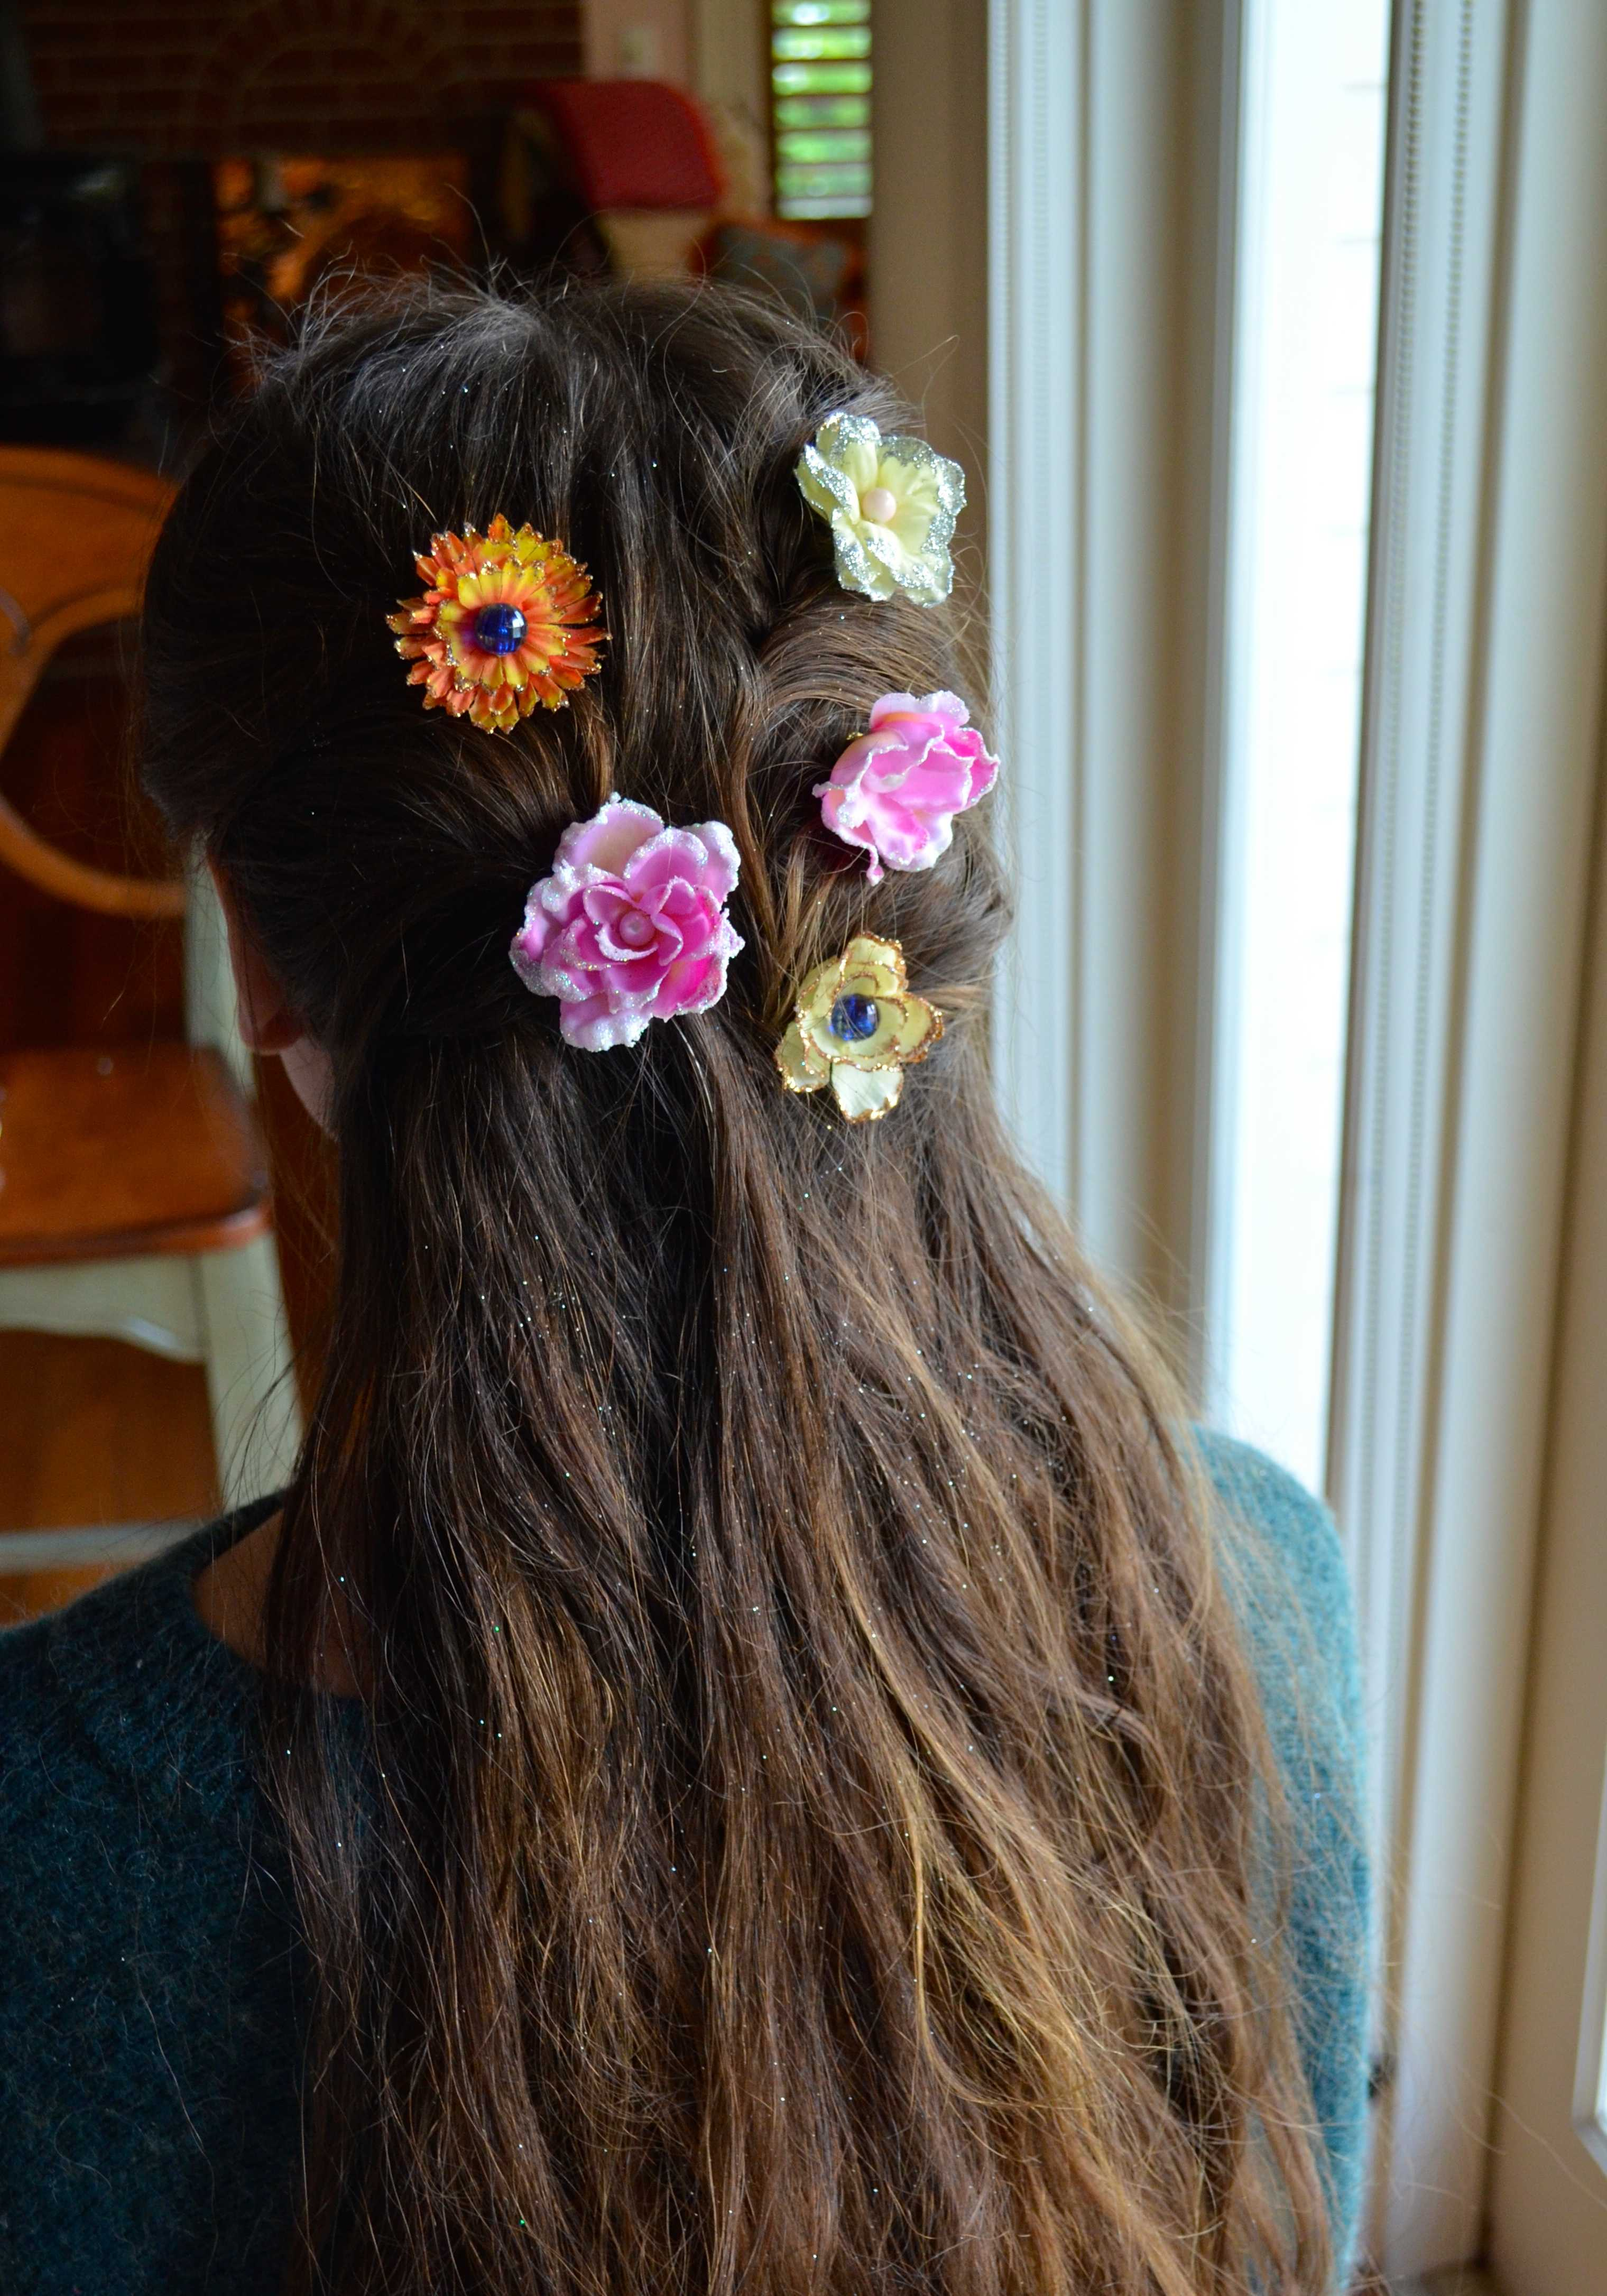 How to Make Flower Hair Accessories DIY Projects Craft